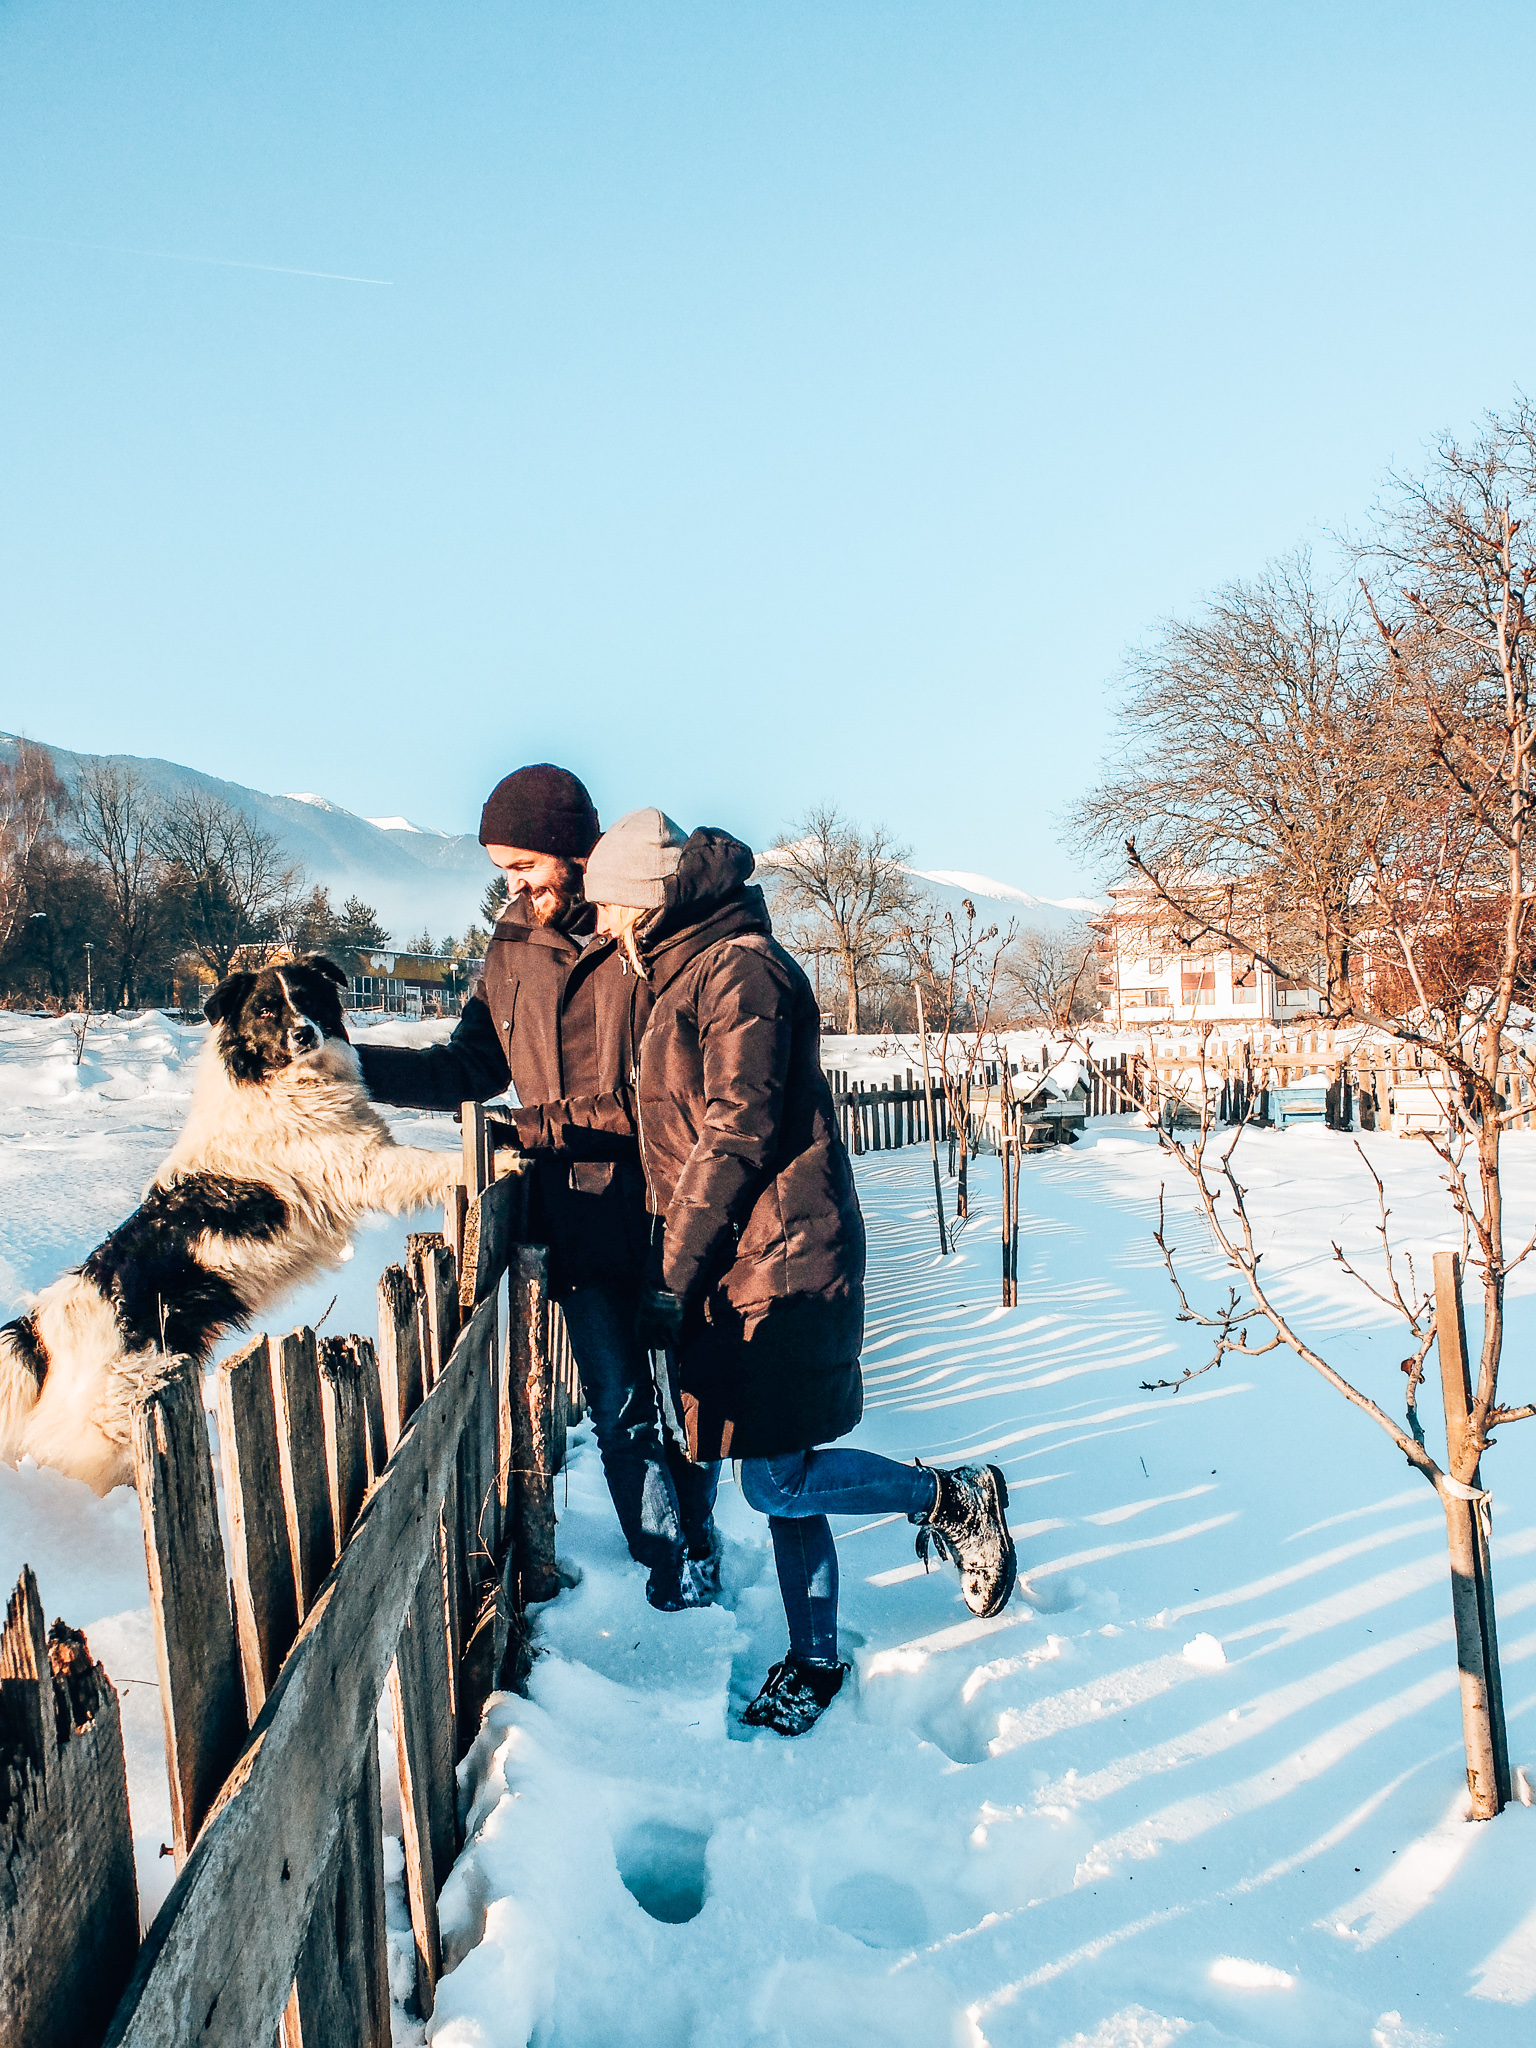 Bansko - budget holiday/couple with dog in snow